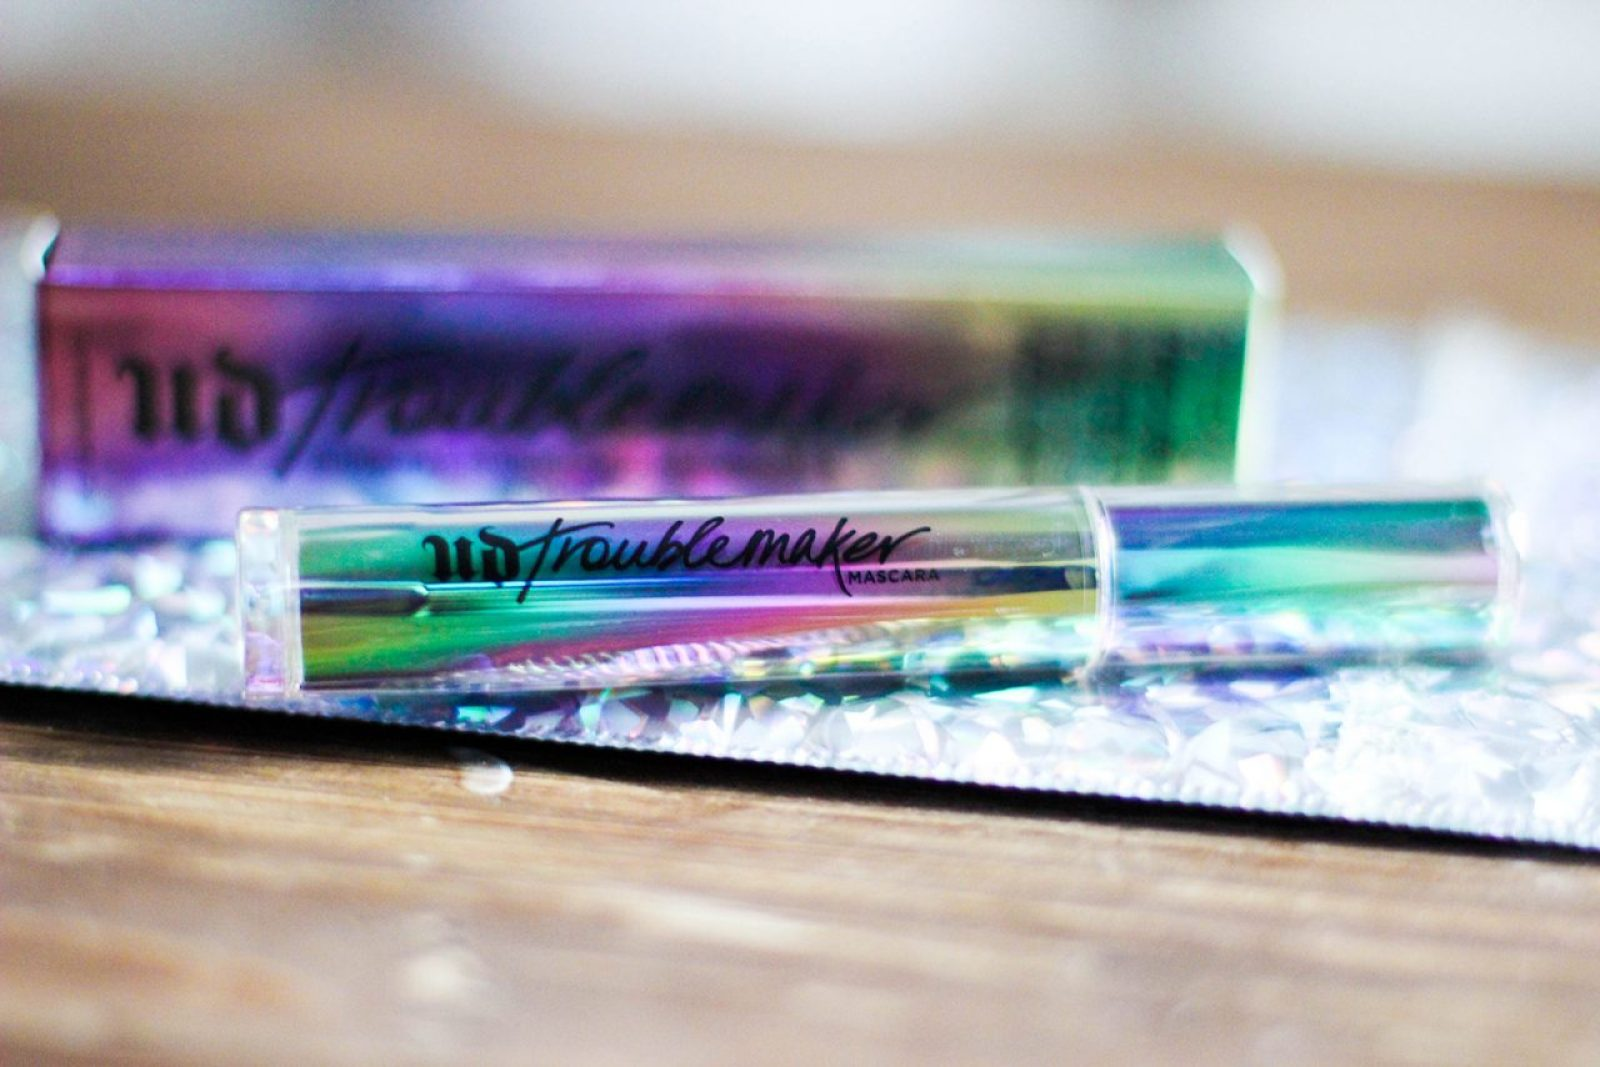 URBAN DECAY Troublemaker Mascara-2